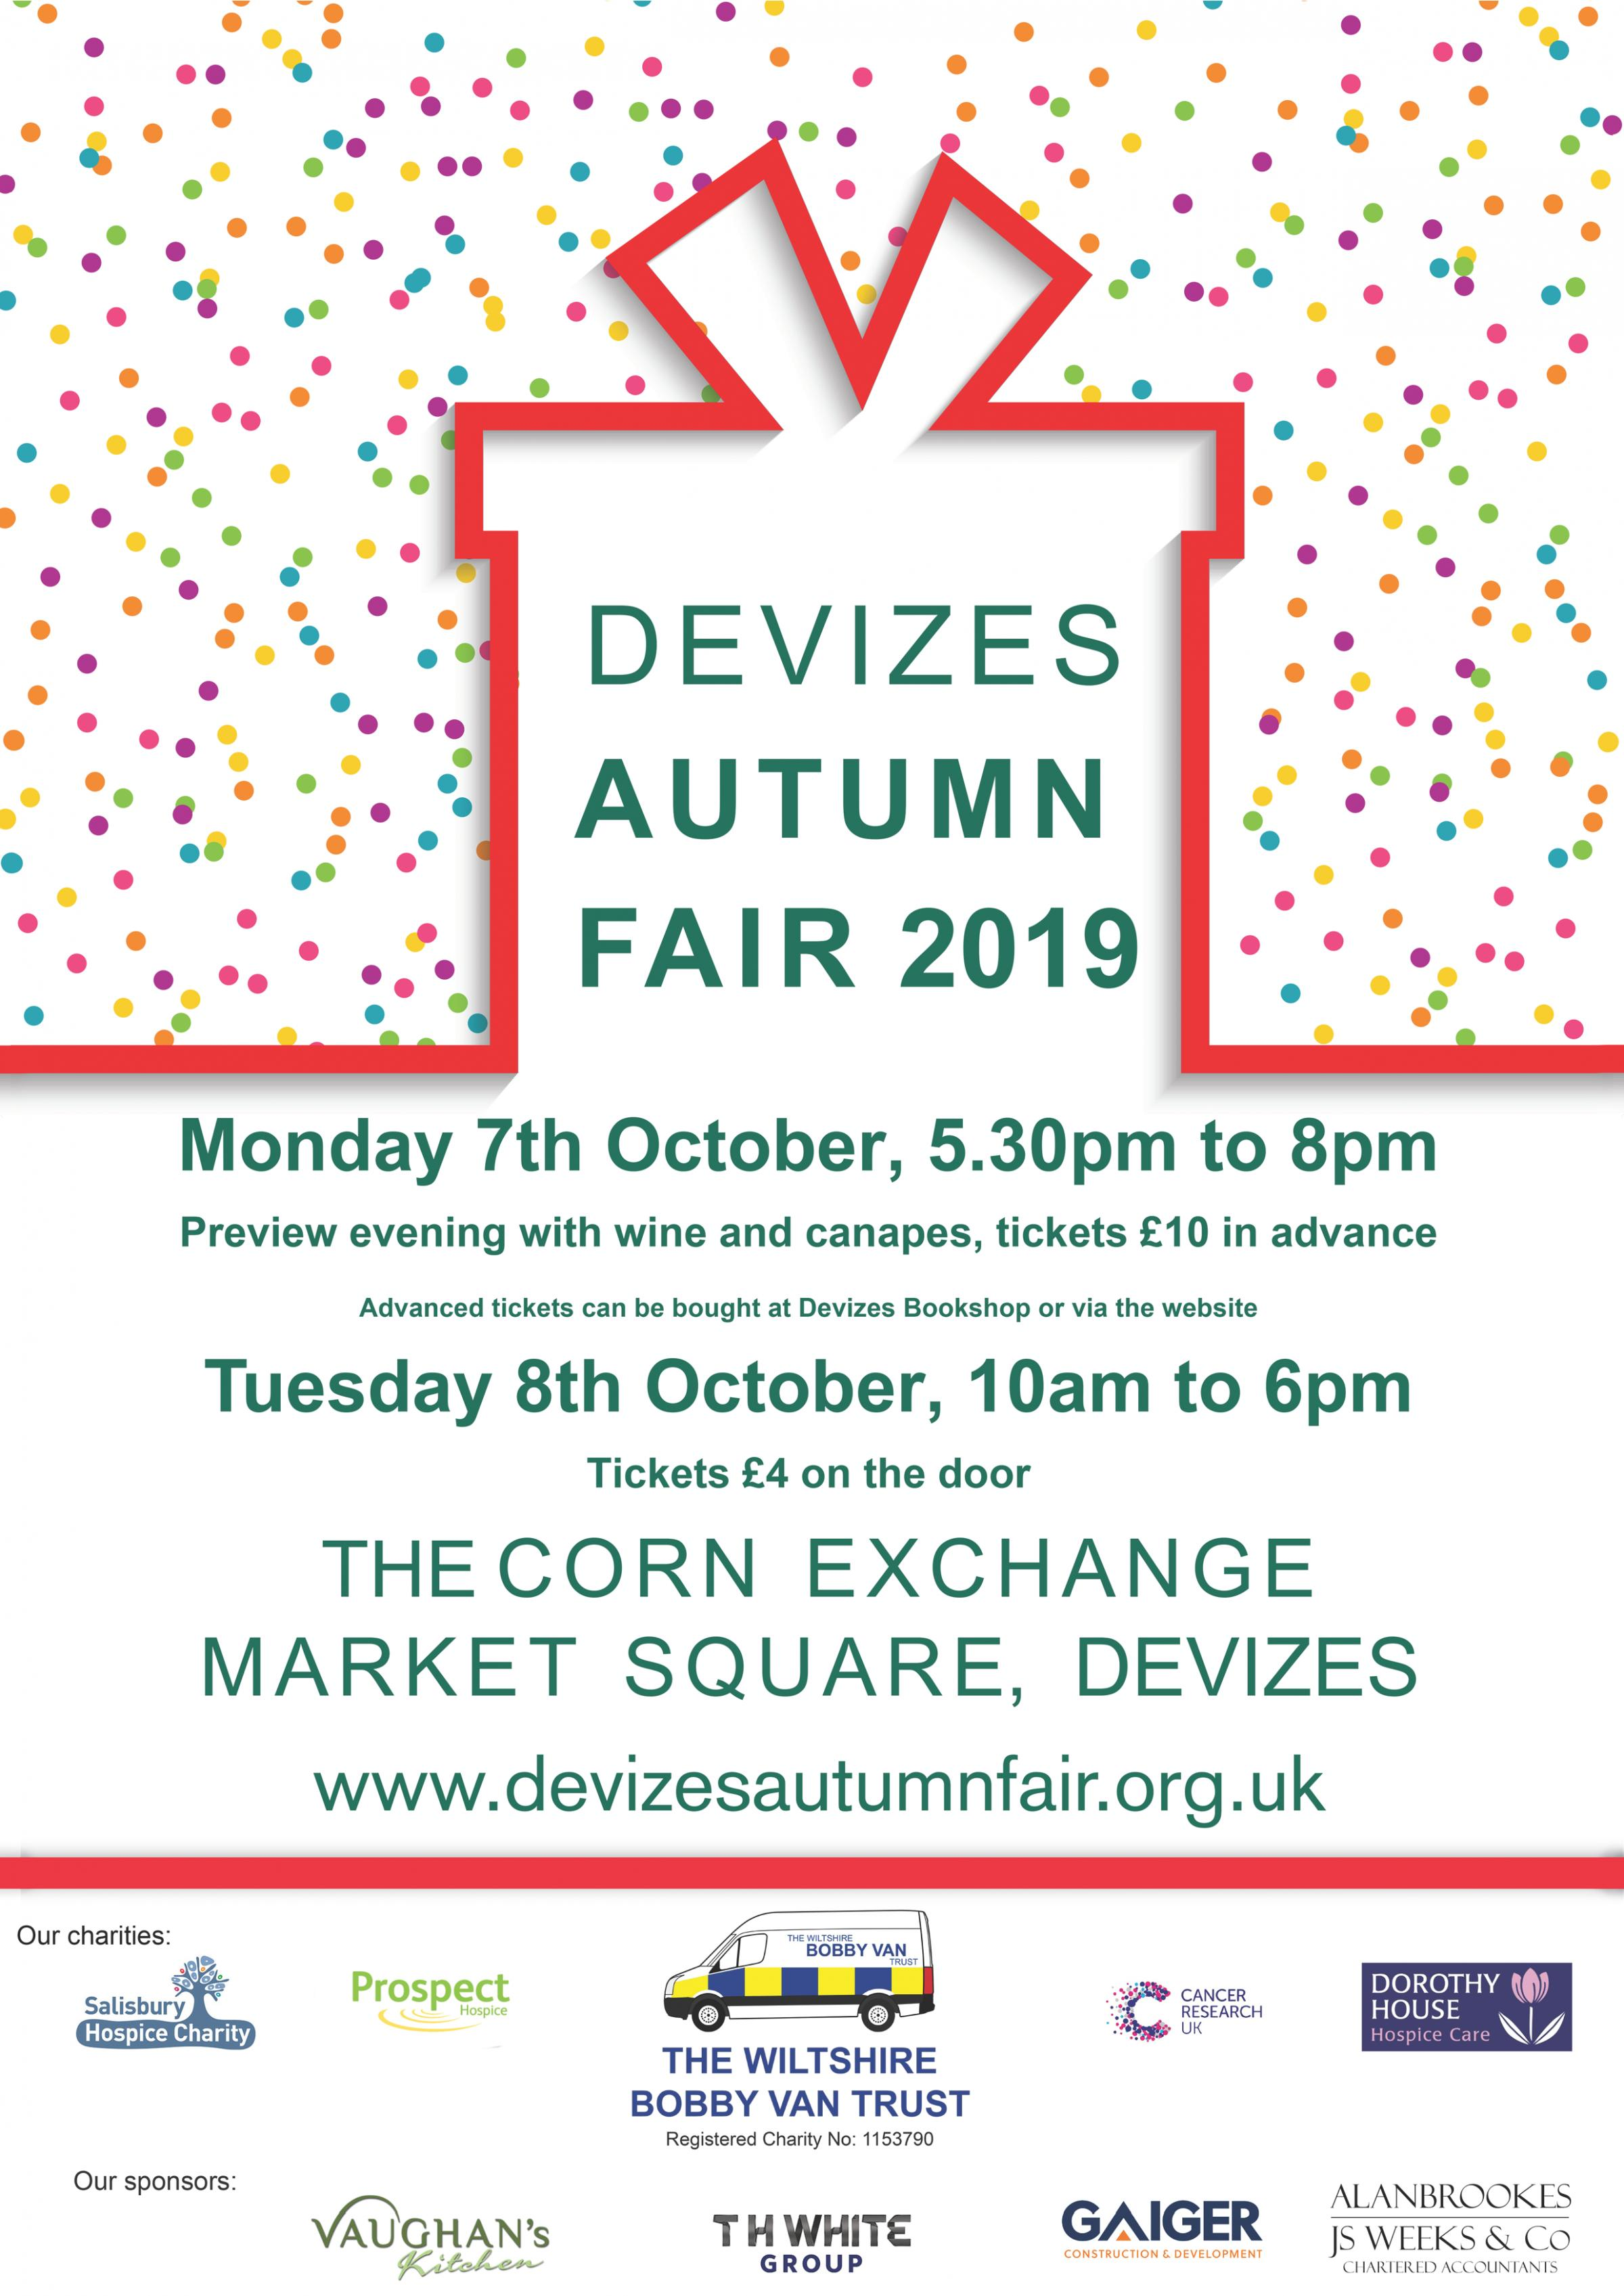 Devizes Autumn Fair